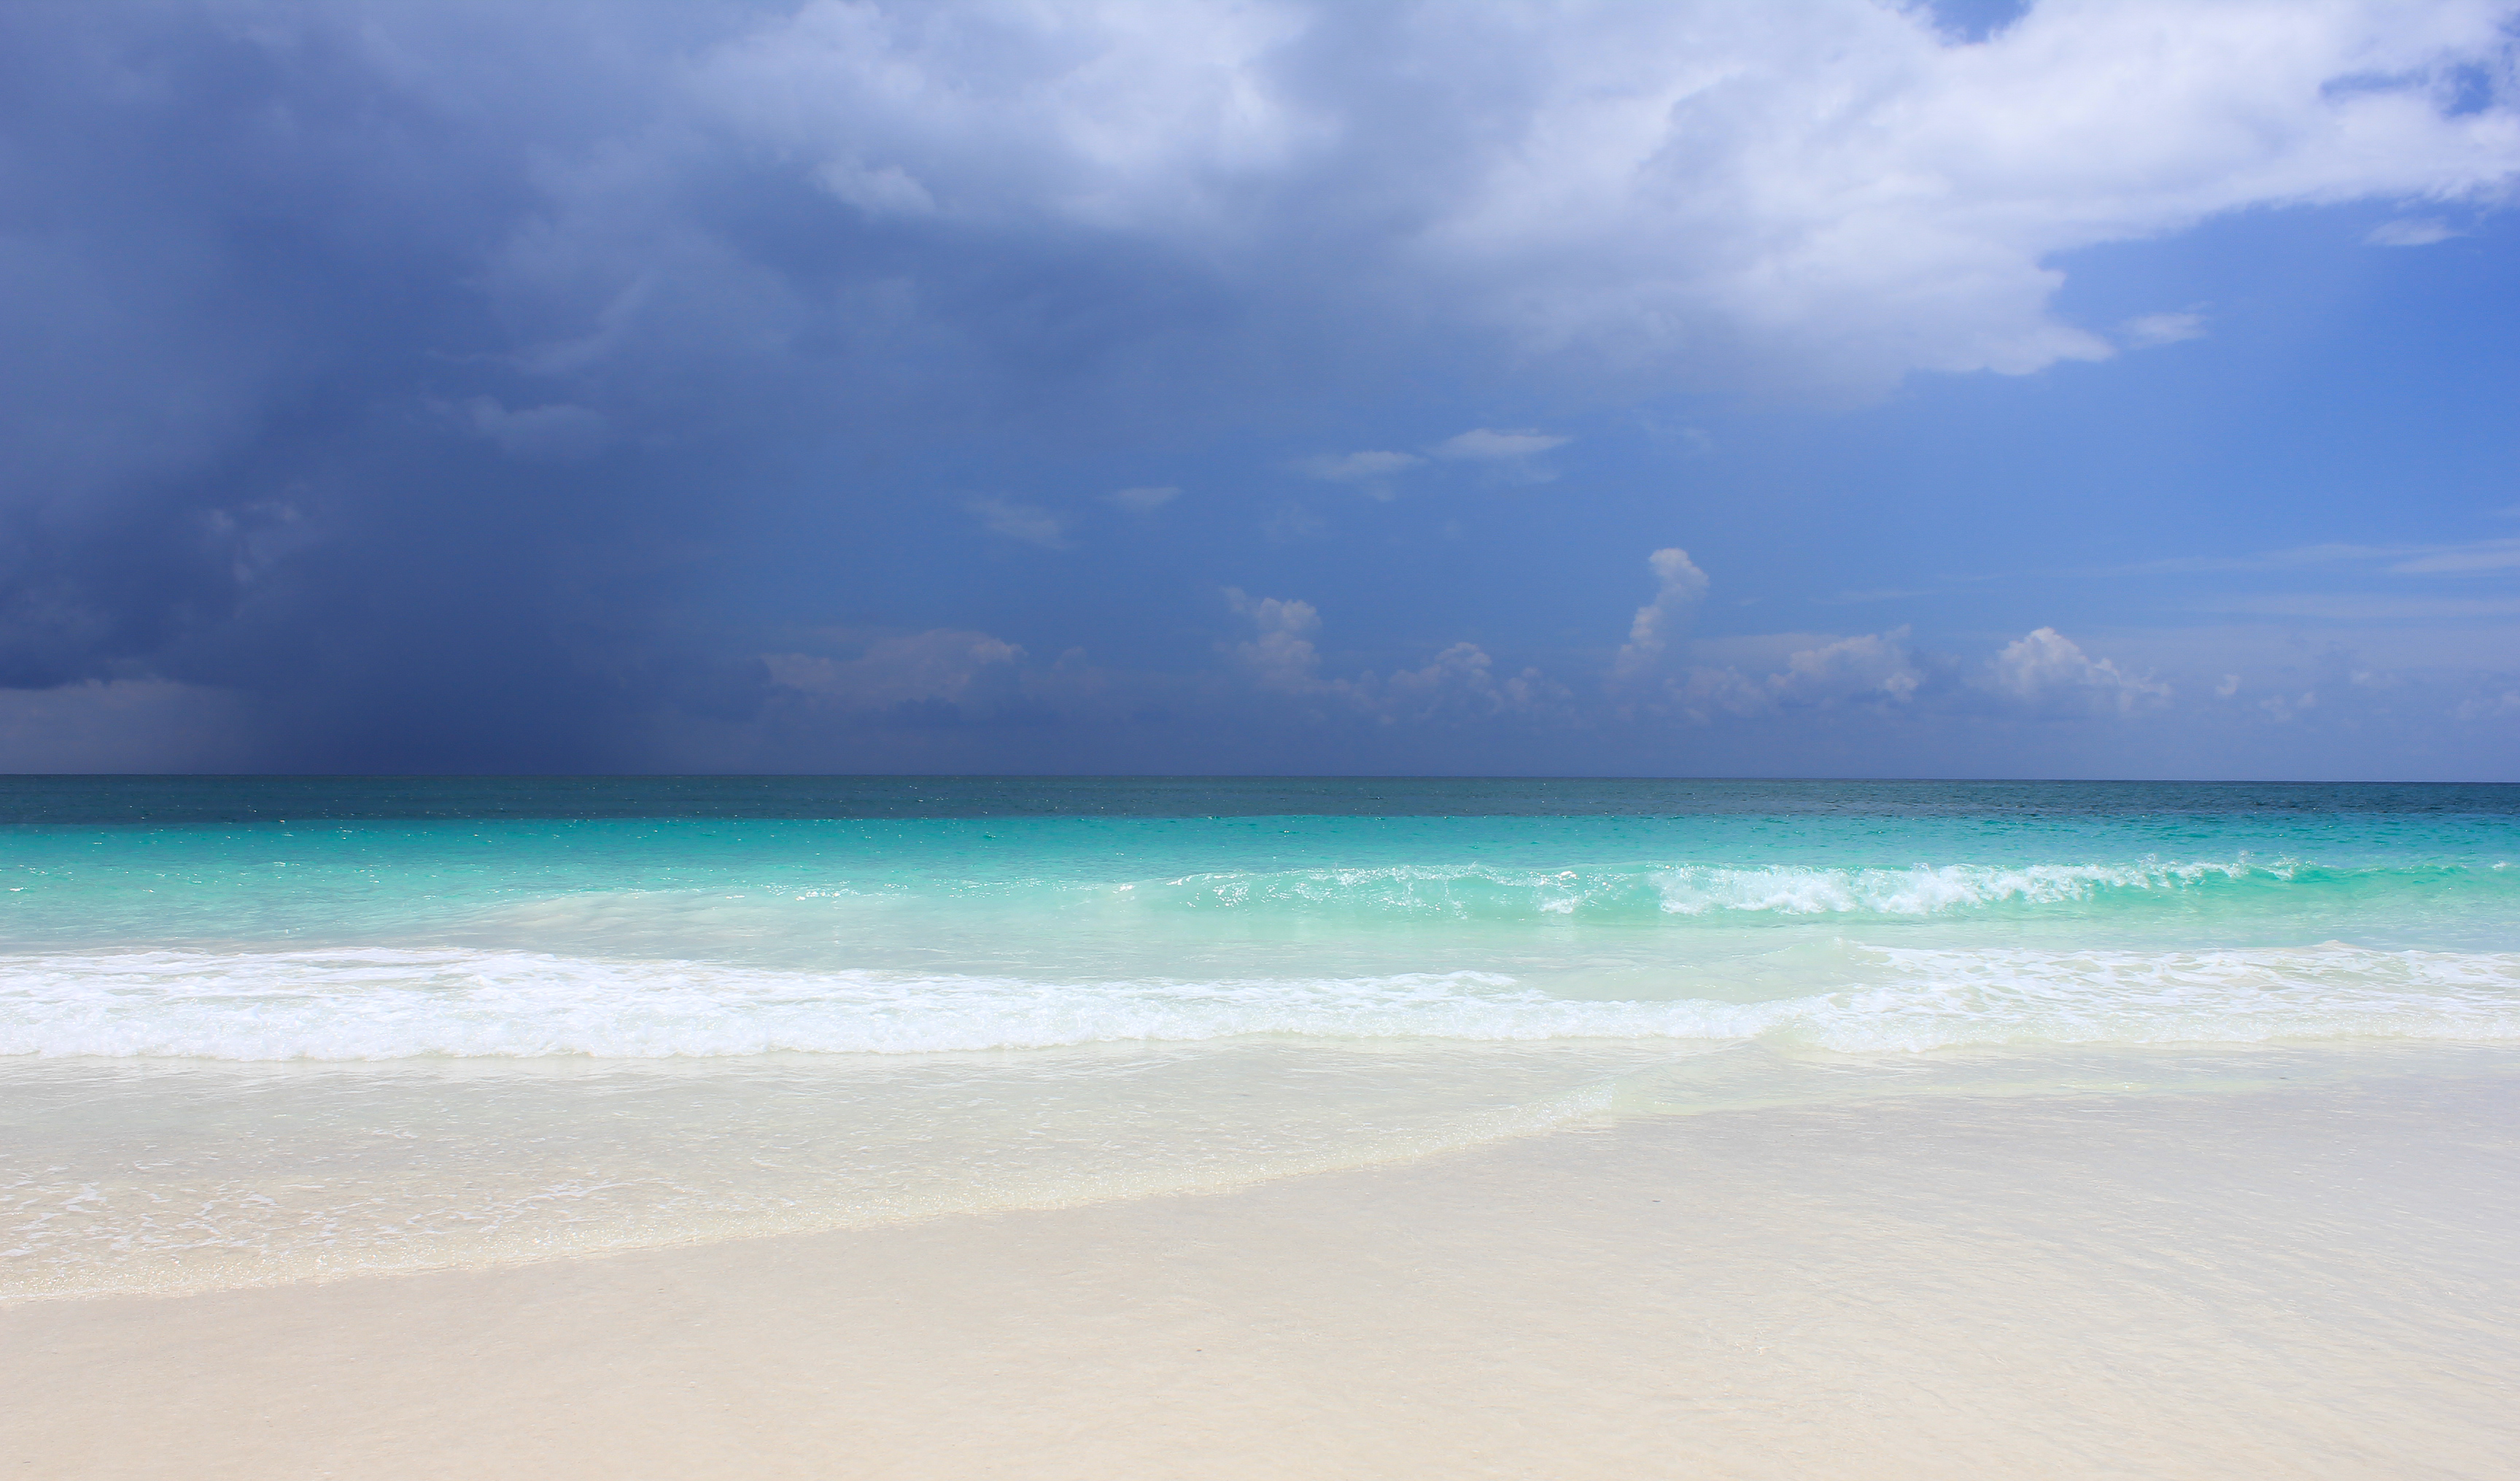 Before a storm, Tulum